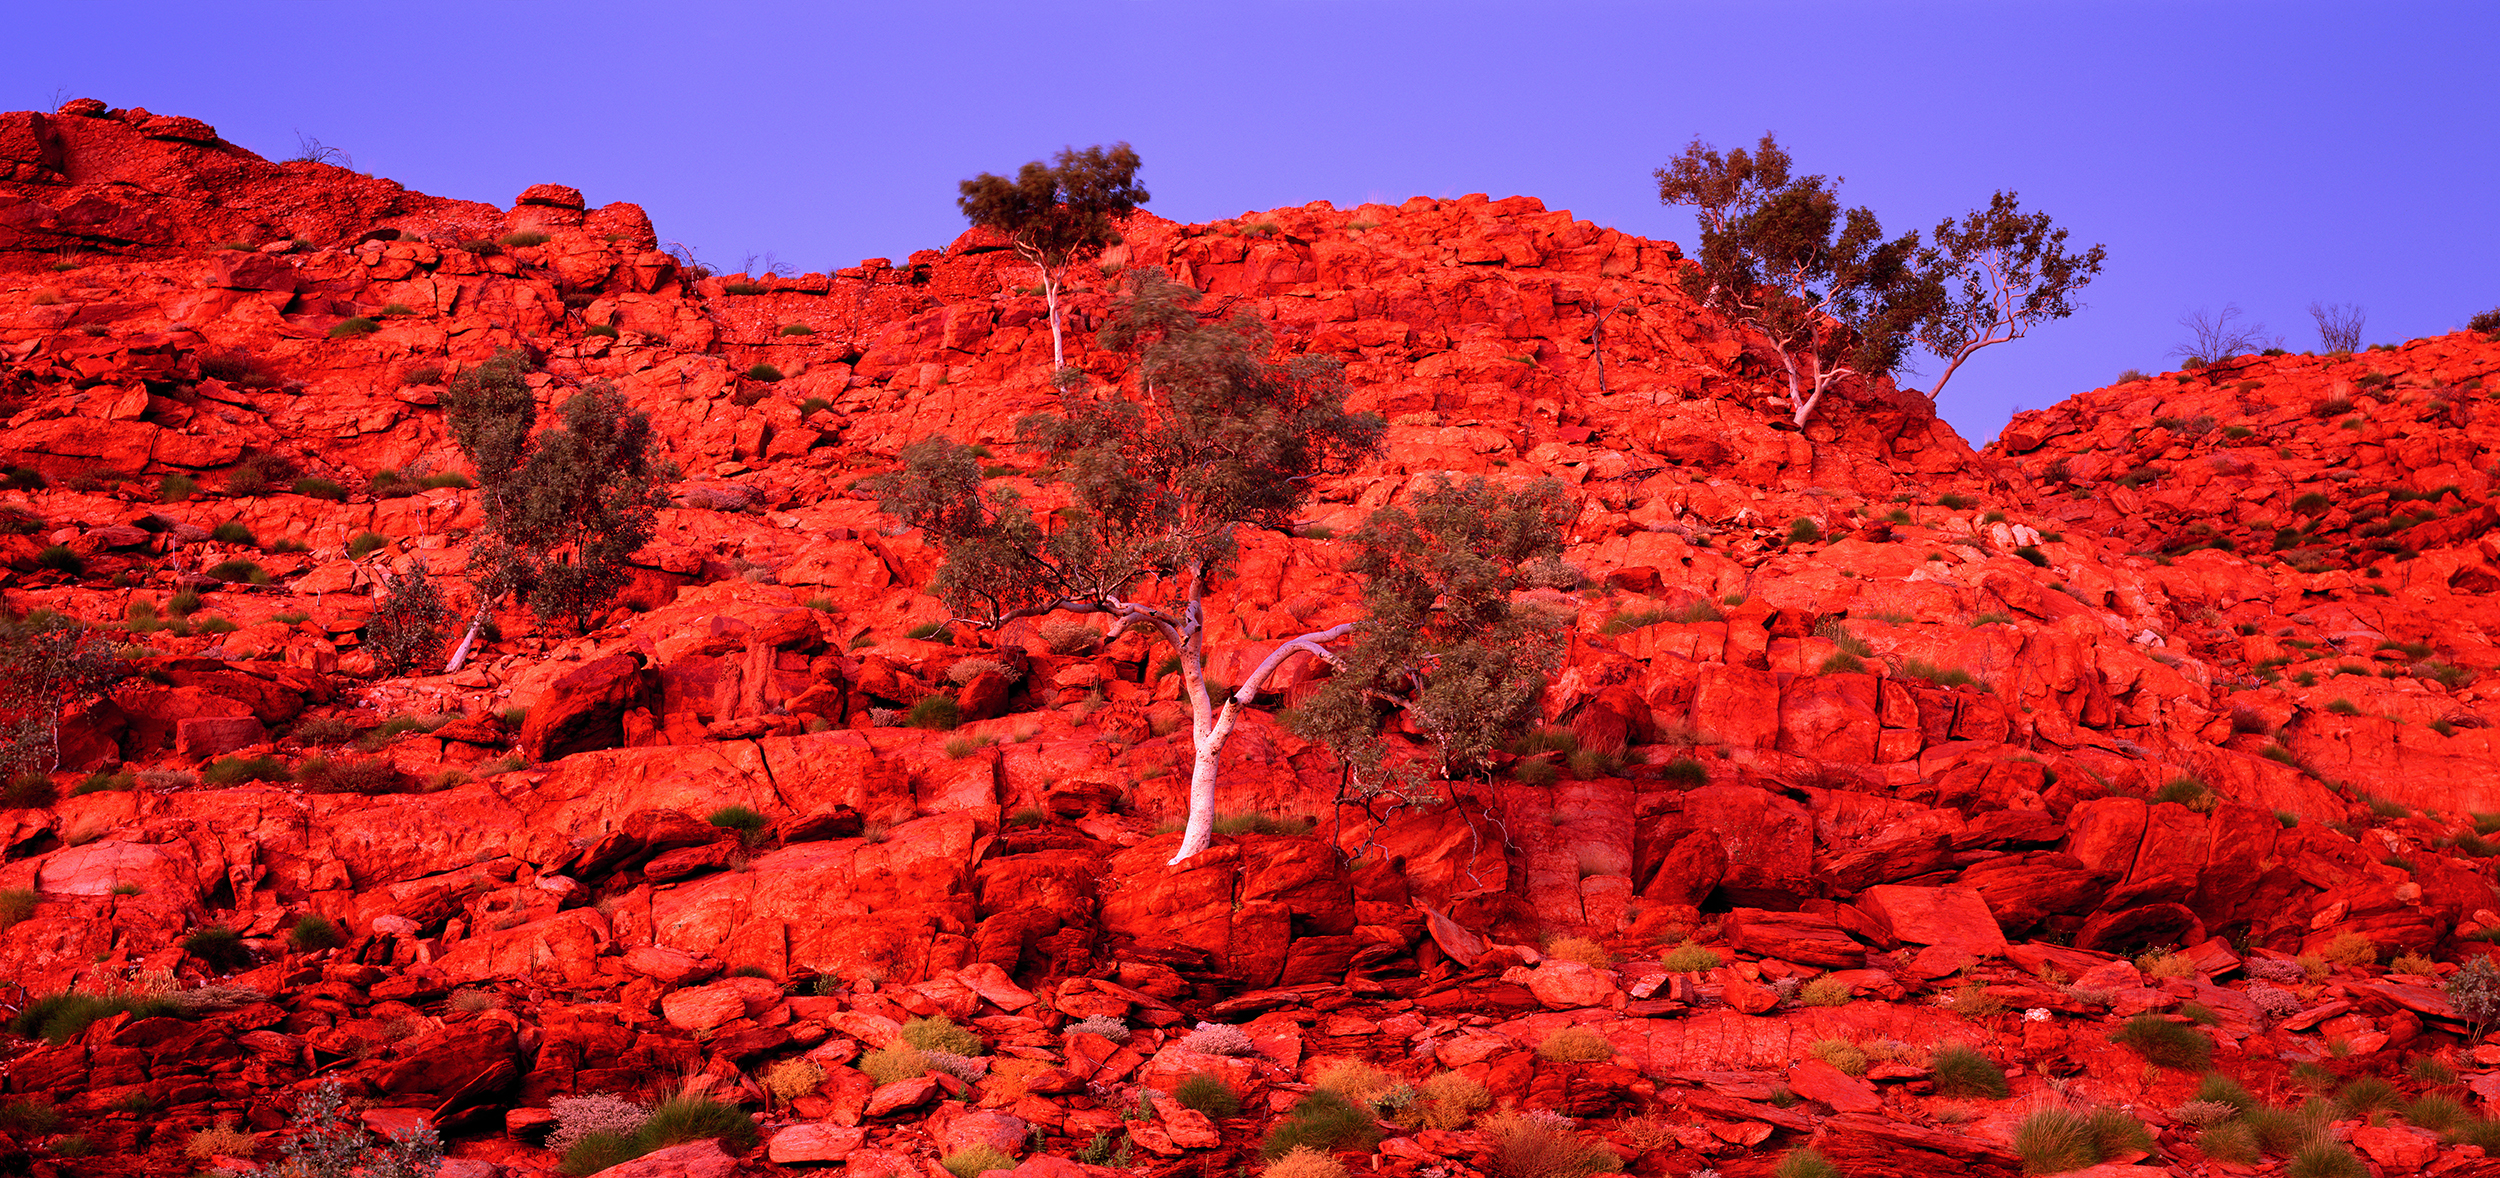 Dawn, Broadhurst Range, Rudall River National Park, Little Sandy Desert, Pilbara, Western Australia, 2011.  Edition of 3.